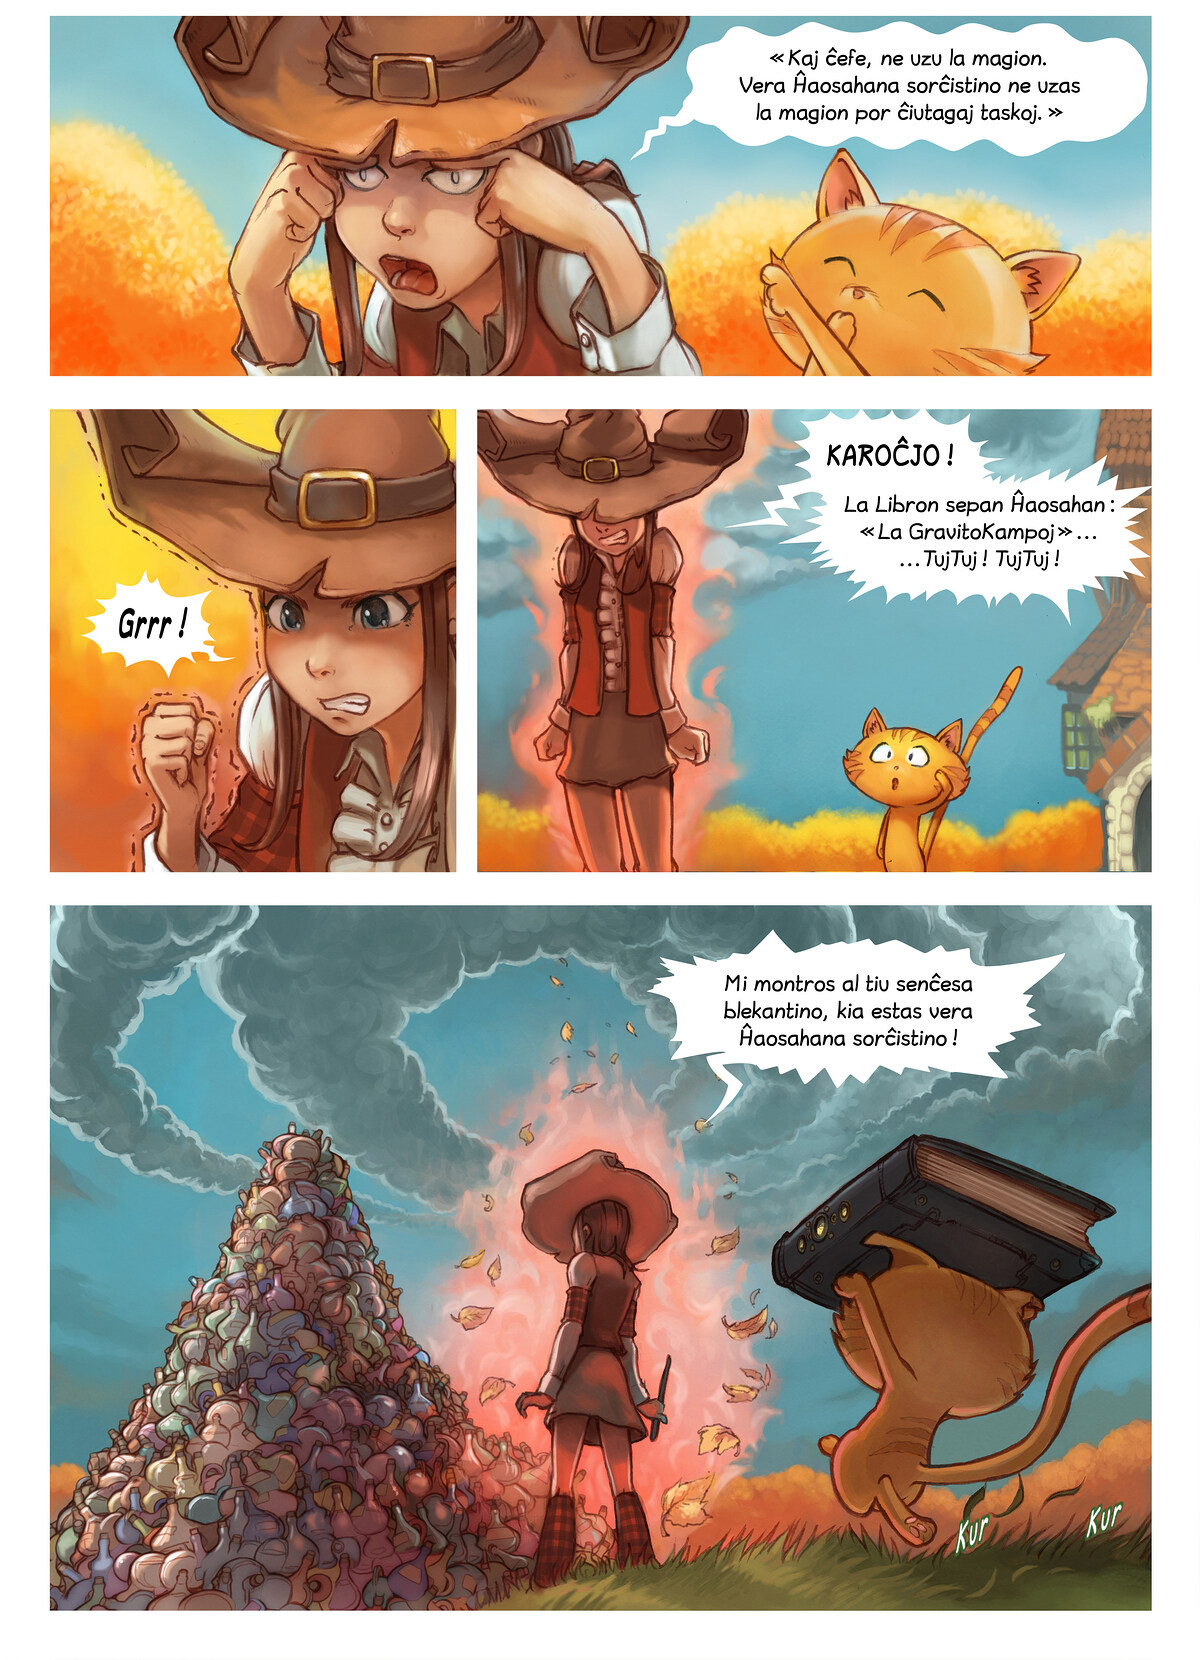 A webcomic page of Pepper&Carrot, rakonto 12 [eo], paĝo 3